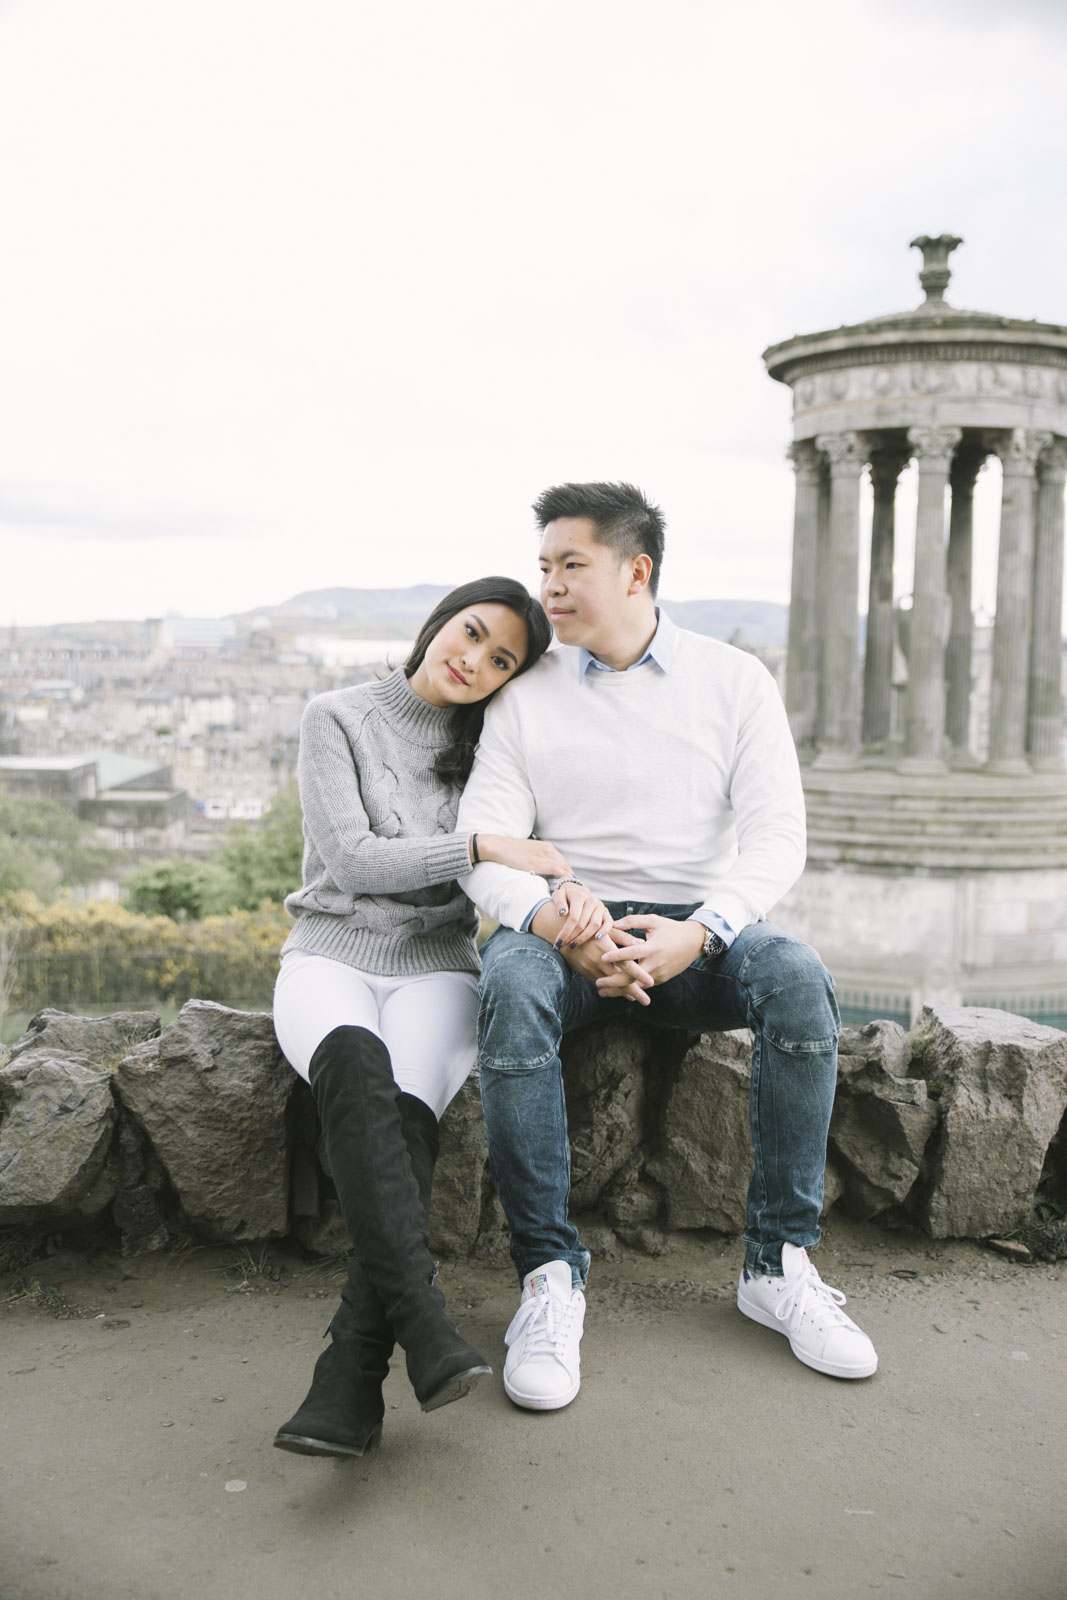 Edinburgh Couple Photoshoot | Suprise Proposal on Calton Hill by Ceranna Photography - Scottish Fine Art Wedding Photographer